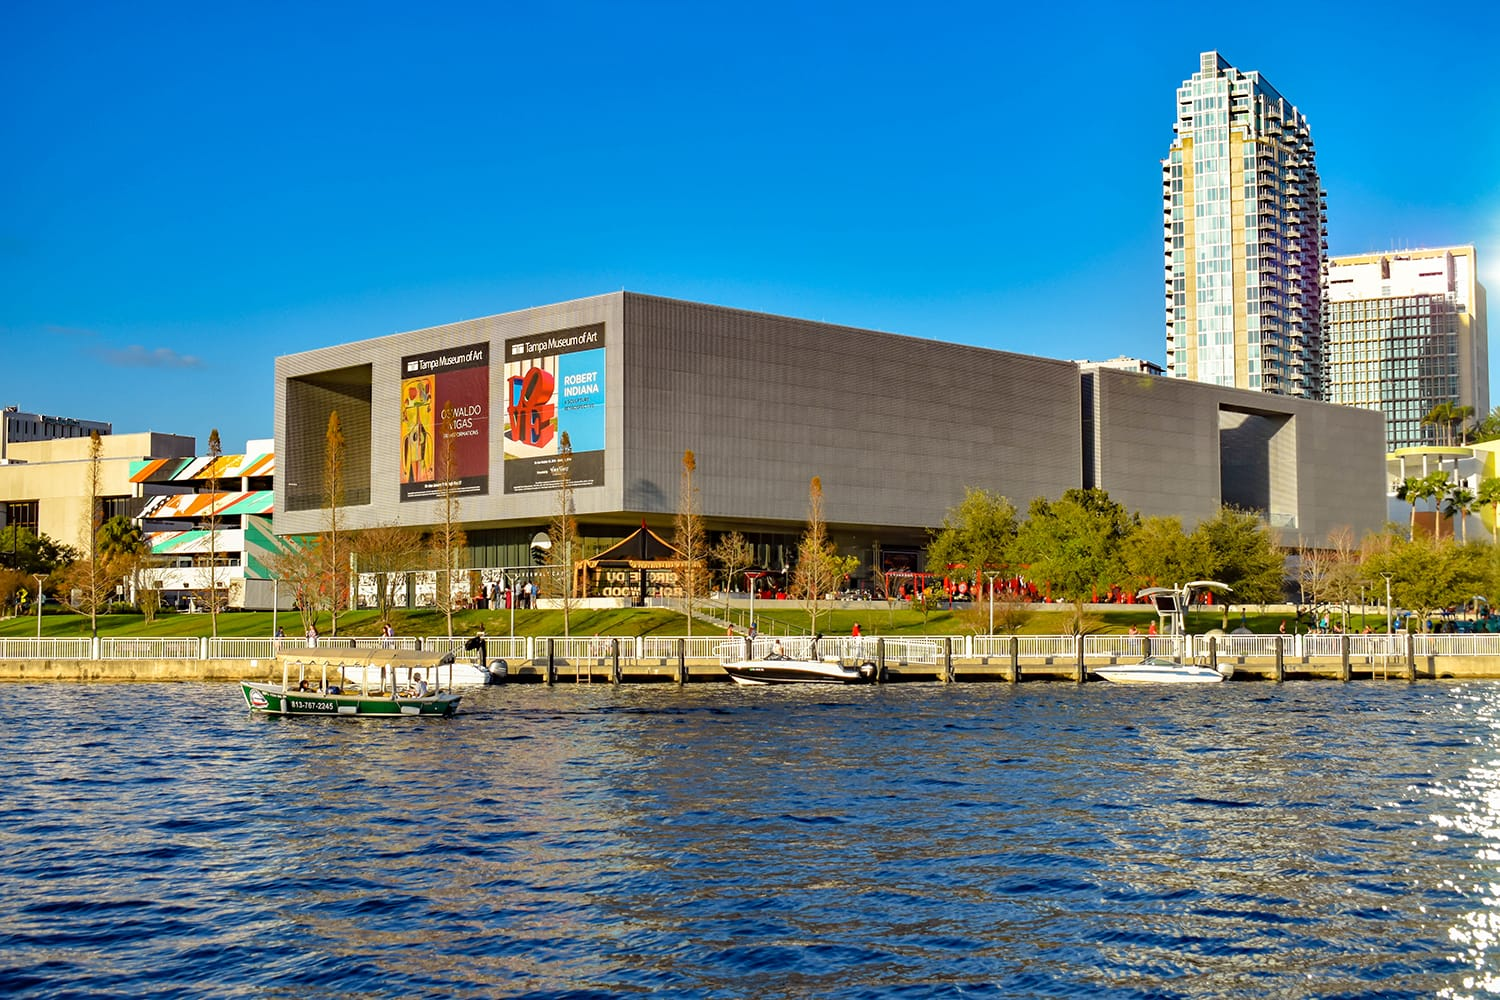 Tampa Museum of Art and skyscrapers over the Hillsborough river coast in downtown area